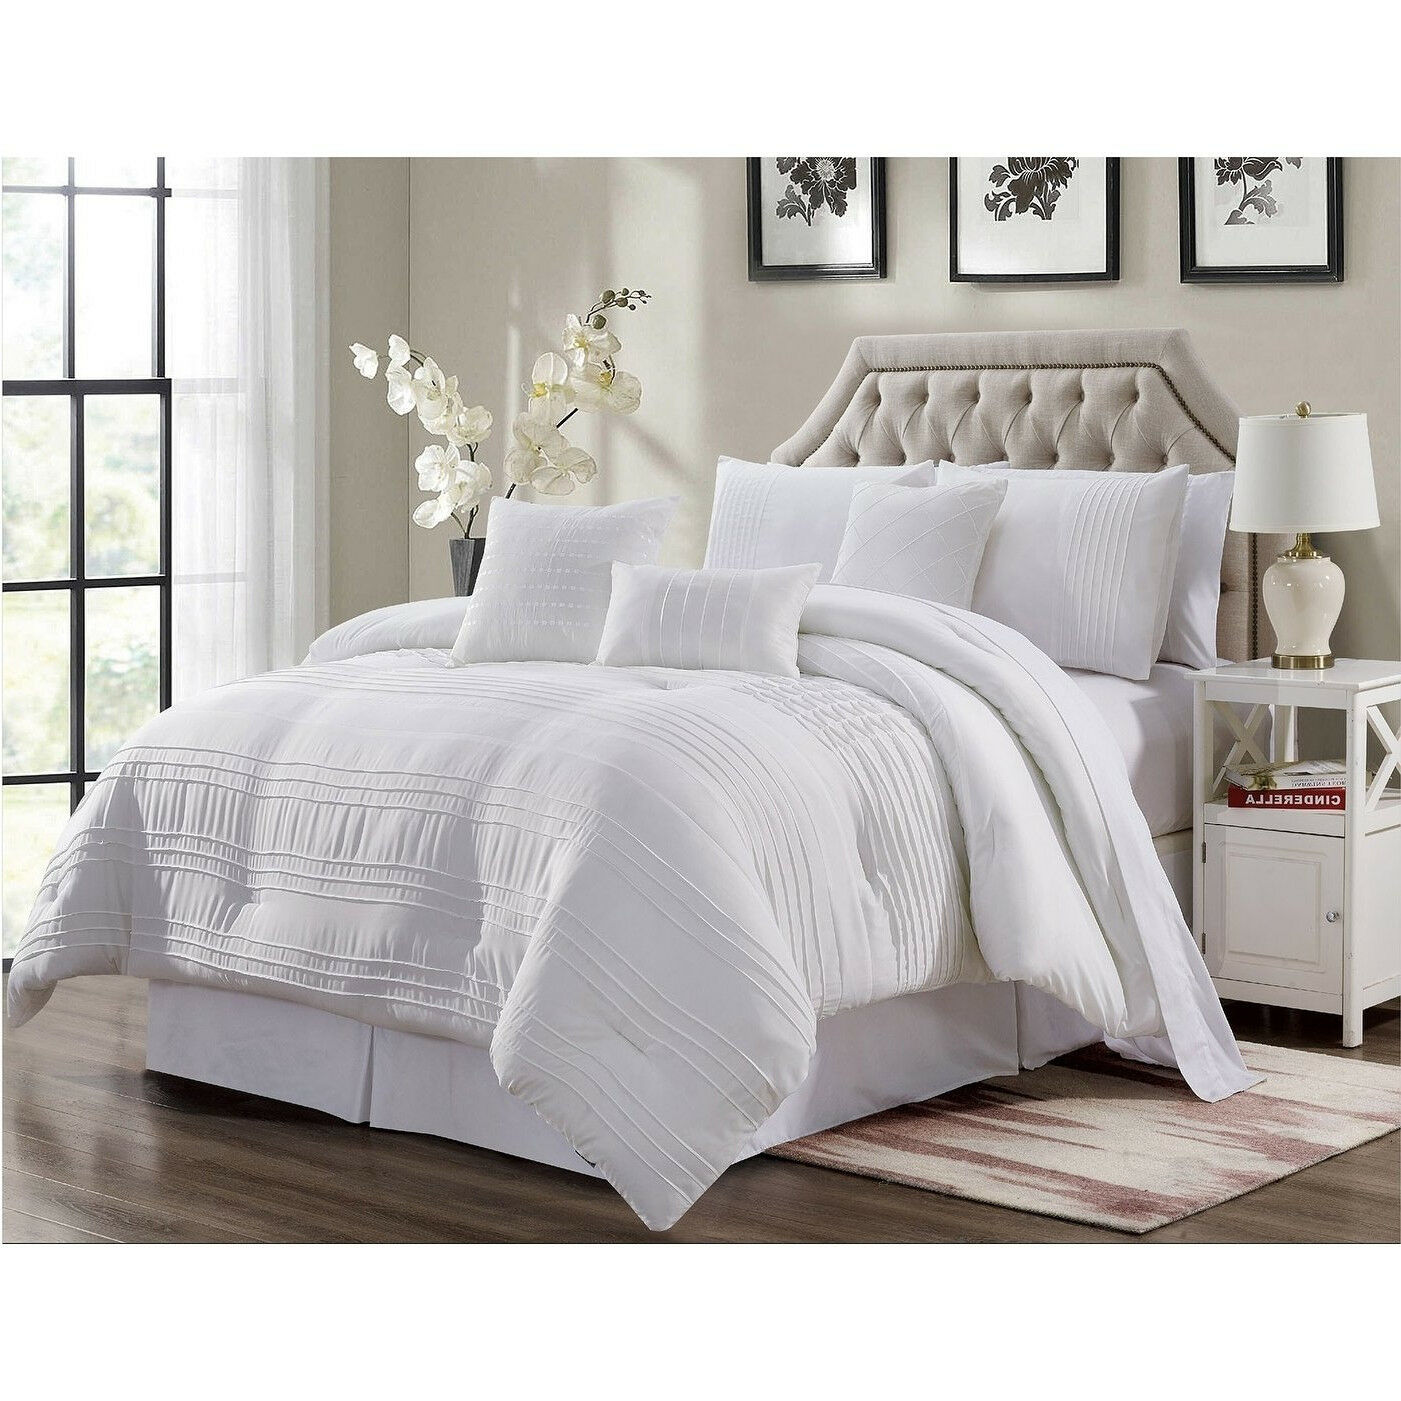 Deluxe Weiß Pleated Embroiderot 7 pcs King Queen Comforter Bedskirt Shams Set